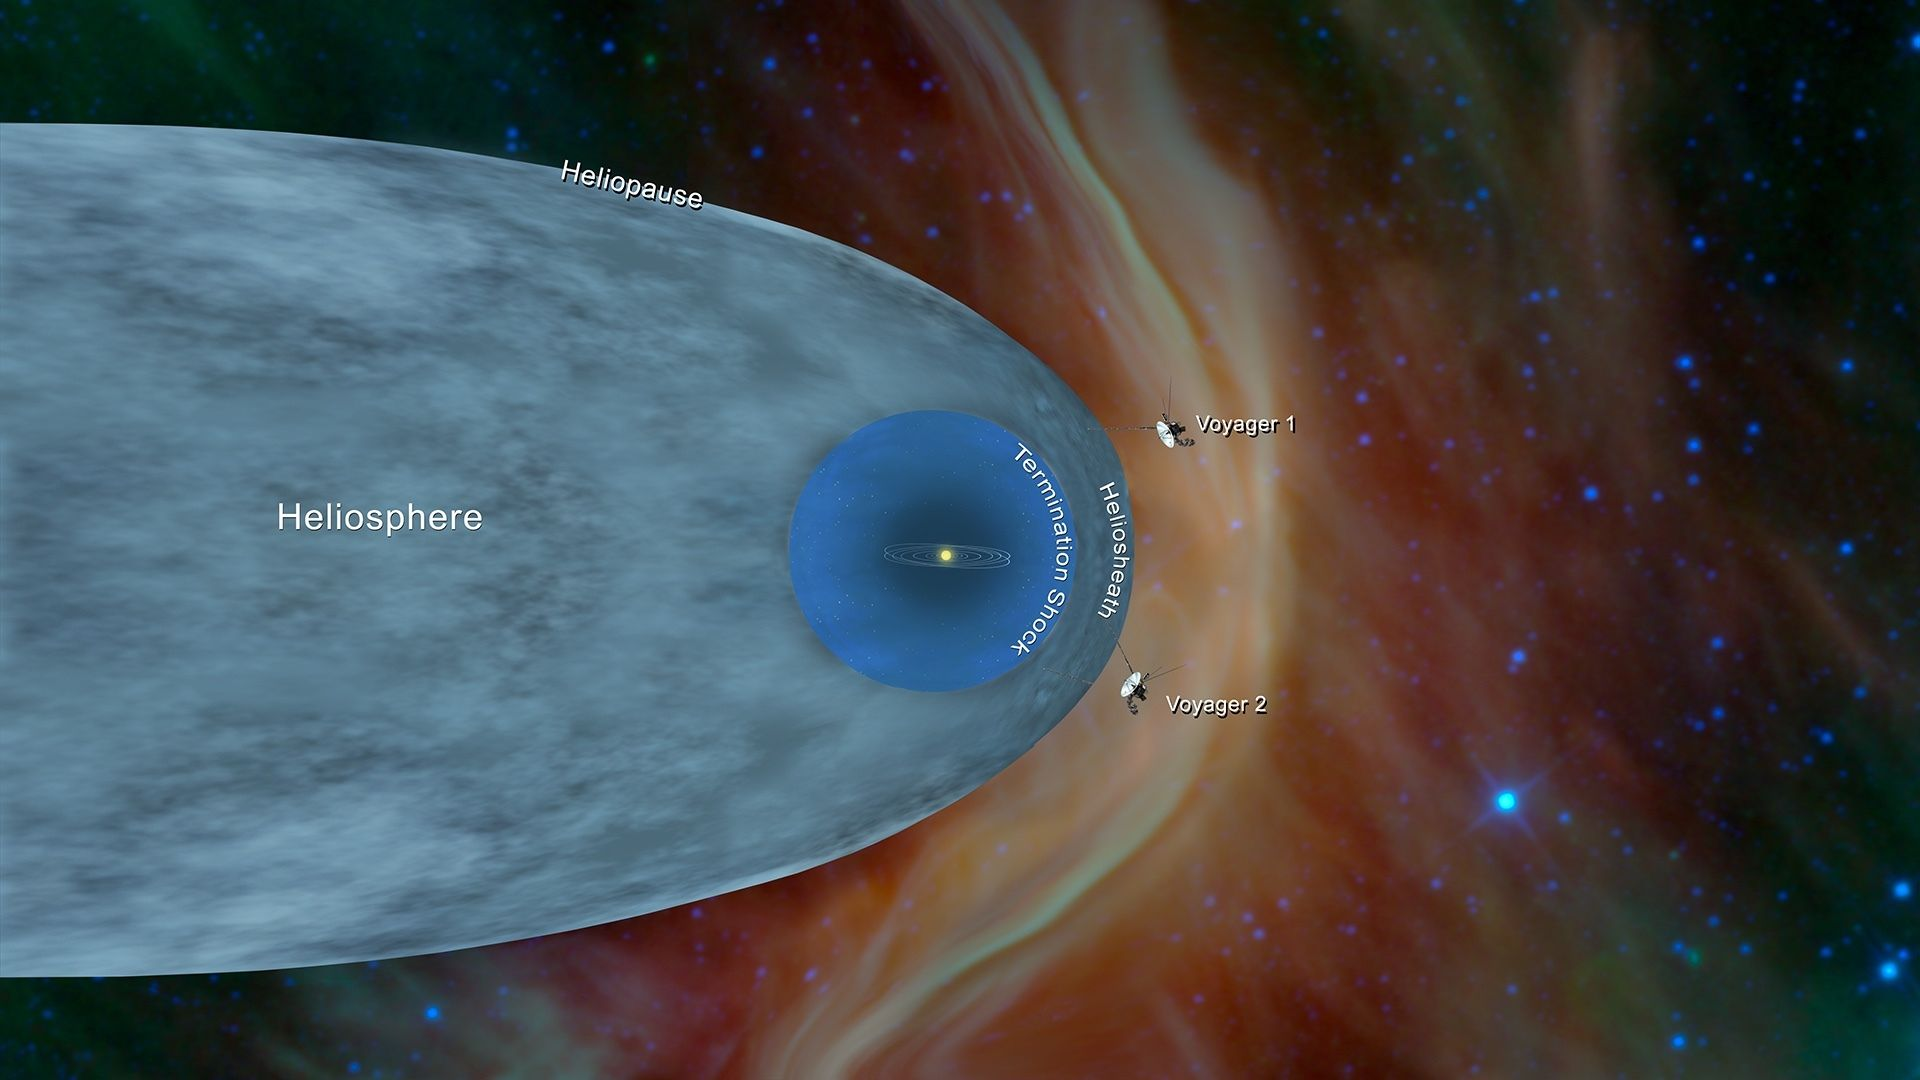 We Finally Know What Happened When Voyager 2 Reached Interstellar Space